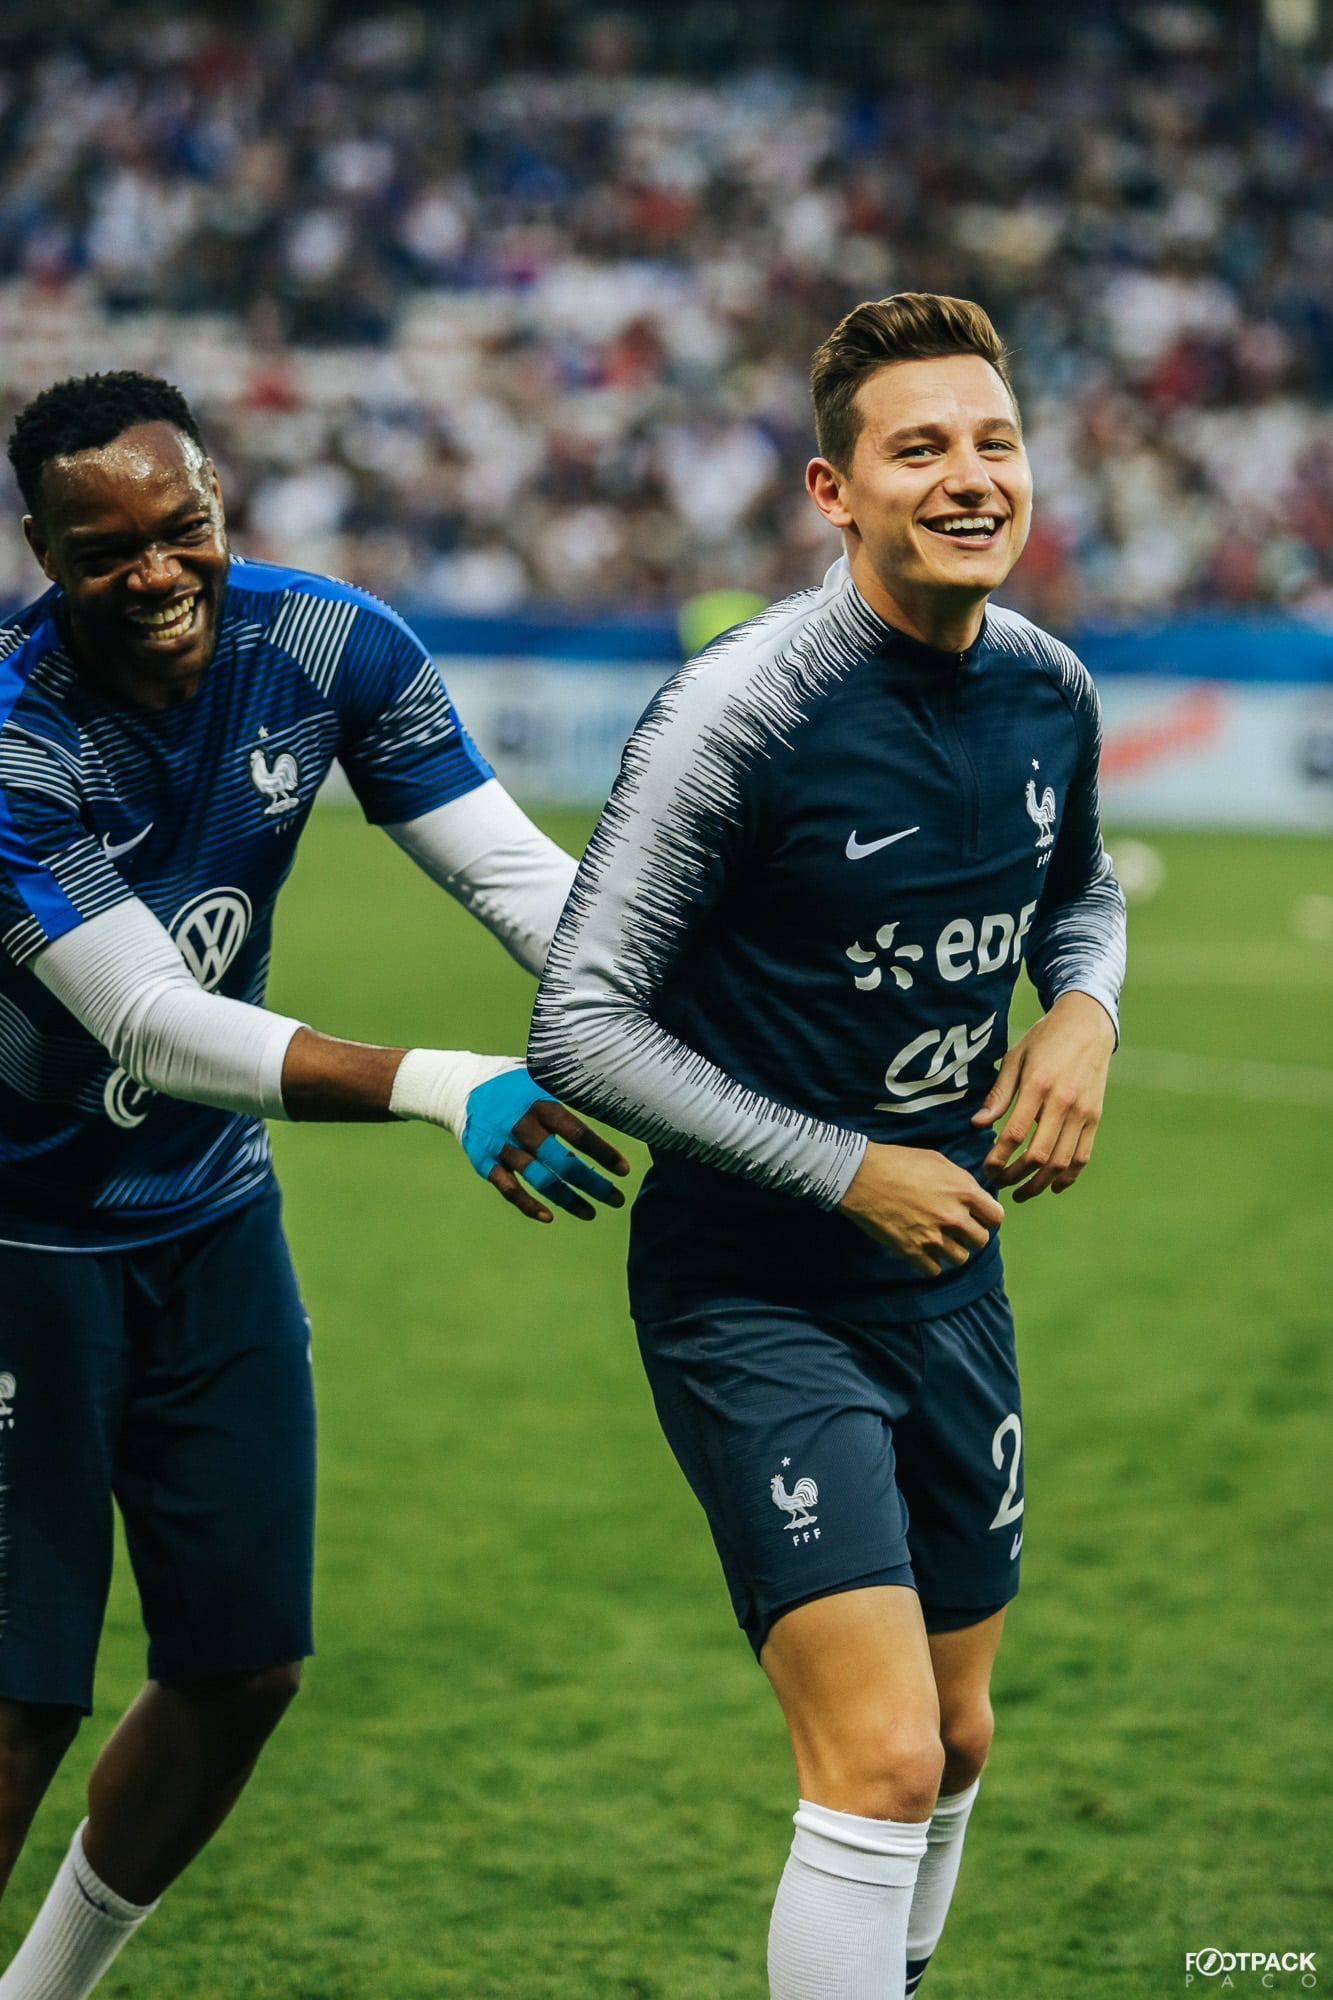 thauvin-mandanda-top-50-photos-footpack